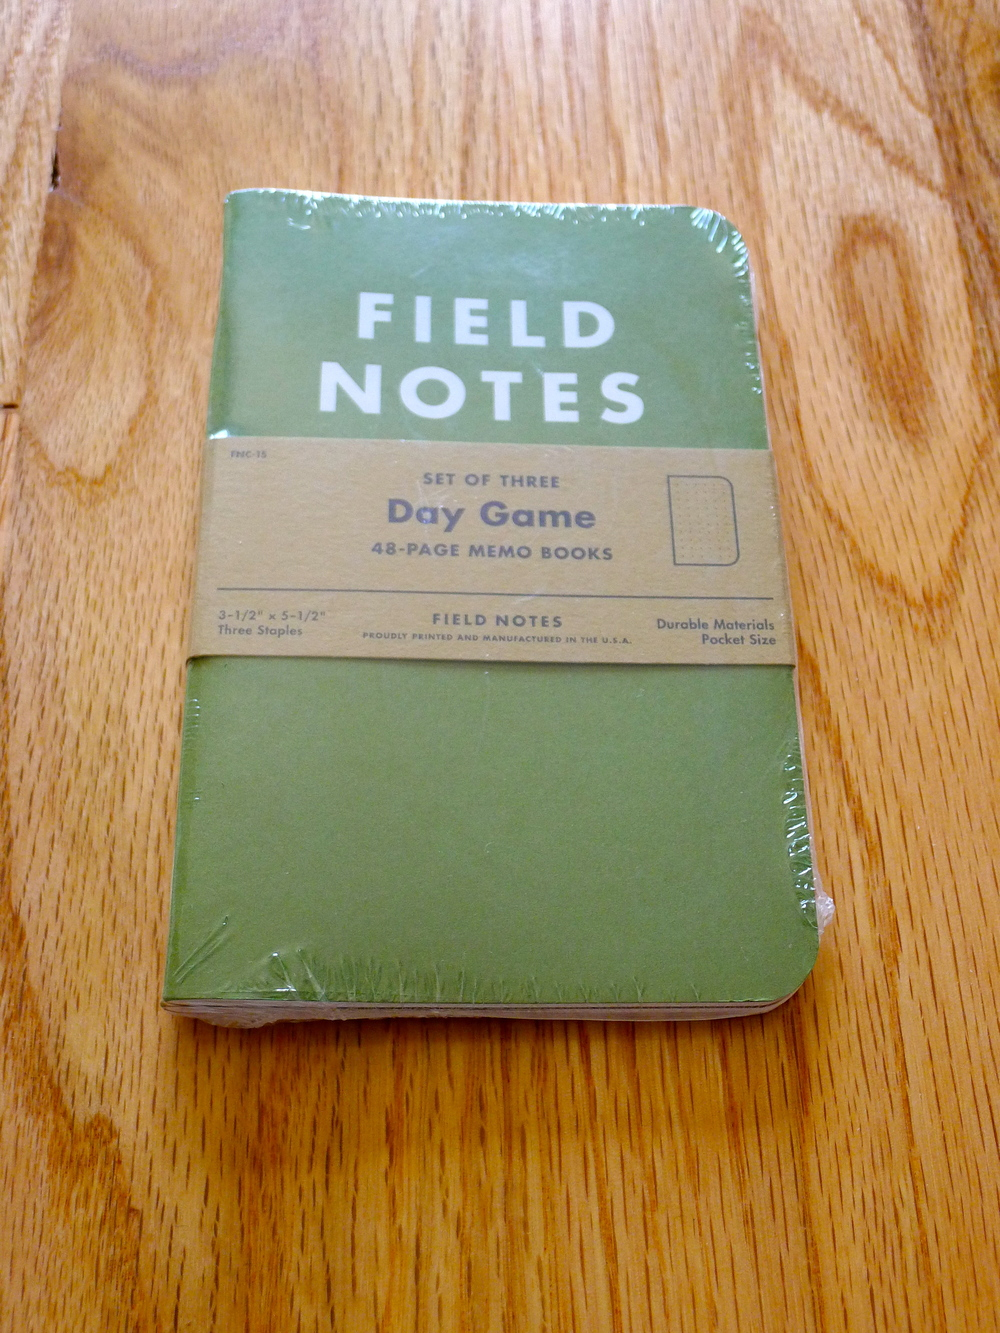 Field Notes Day Game Edition - Summer 2012